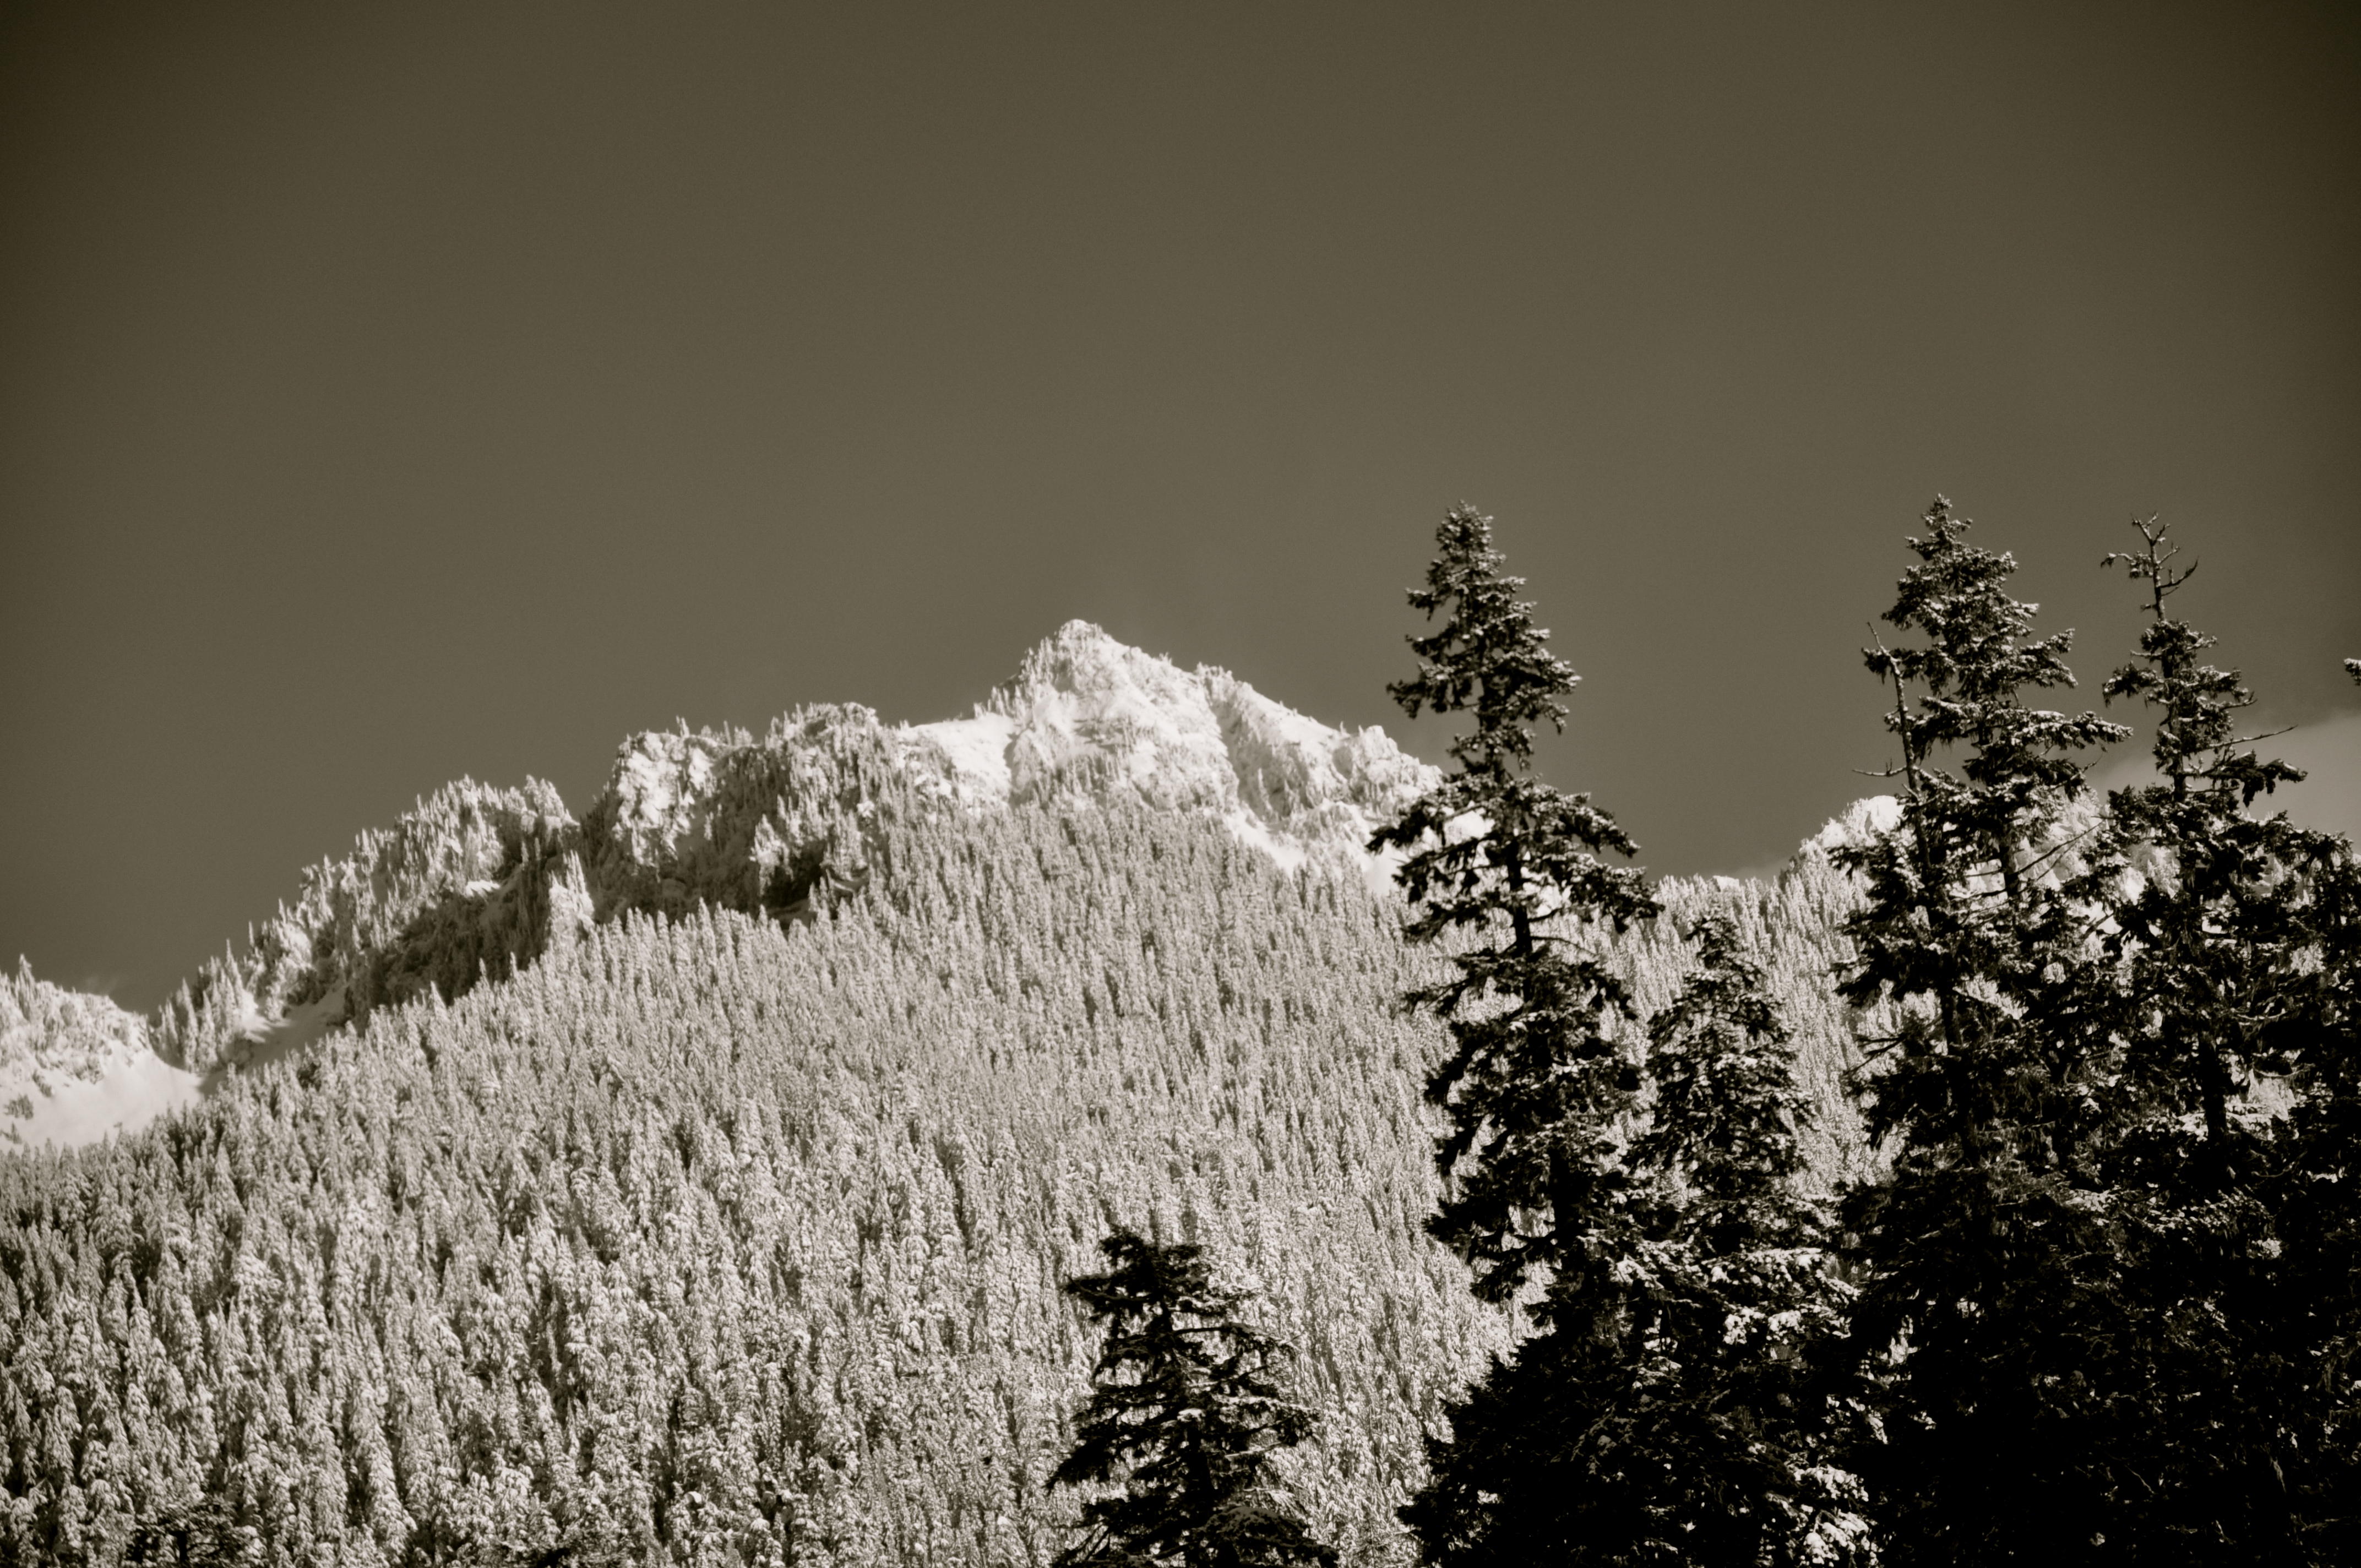 Looking up into the western edge of the Tatoosh Range.